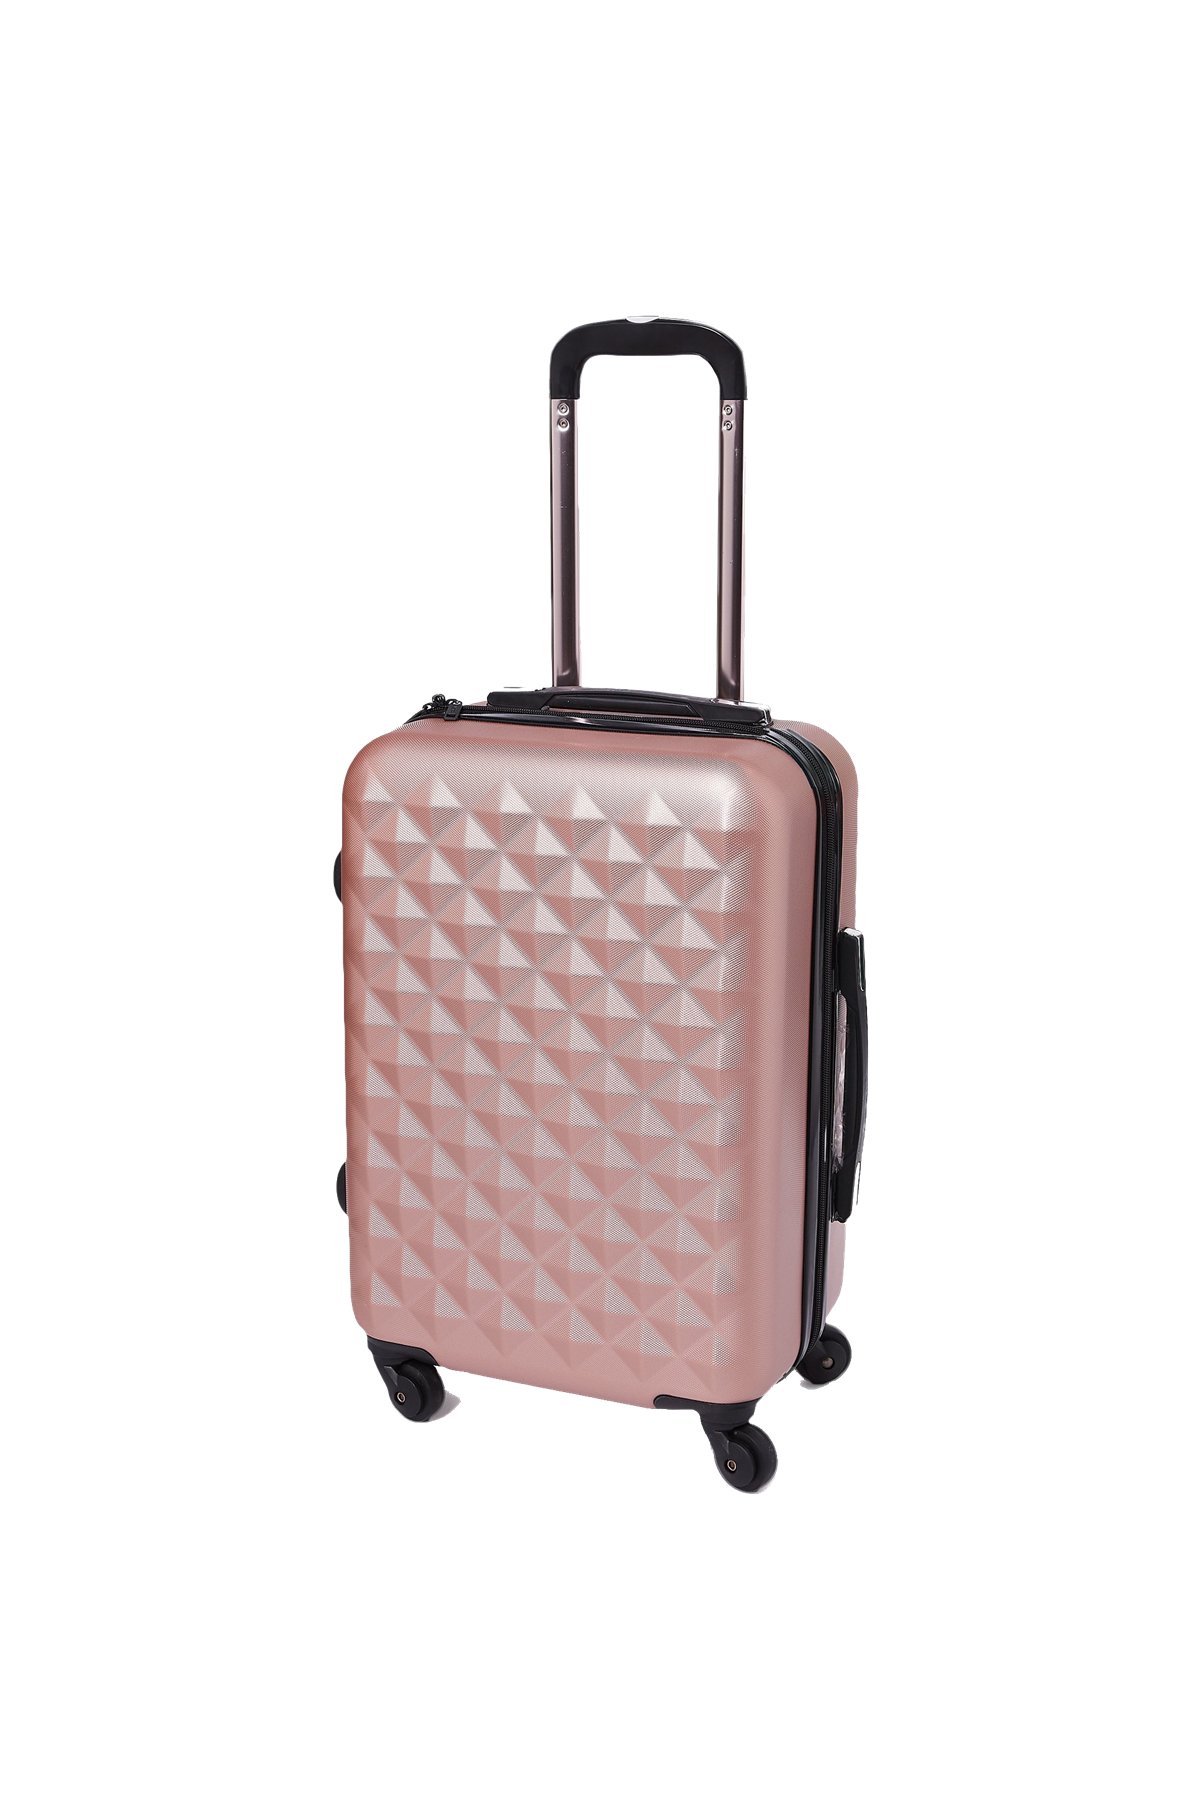 Suitcase Png Free Download.